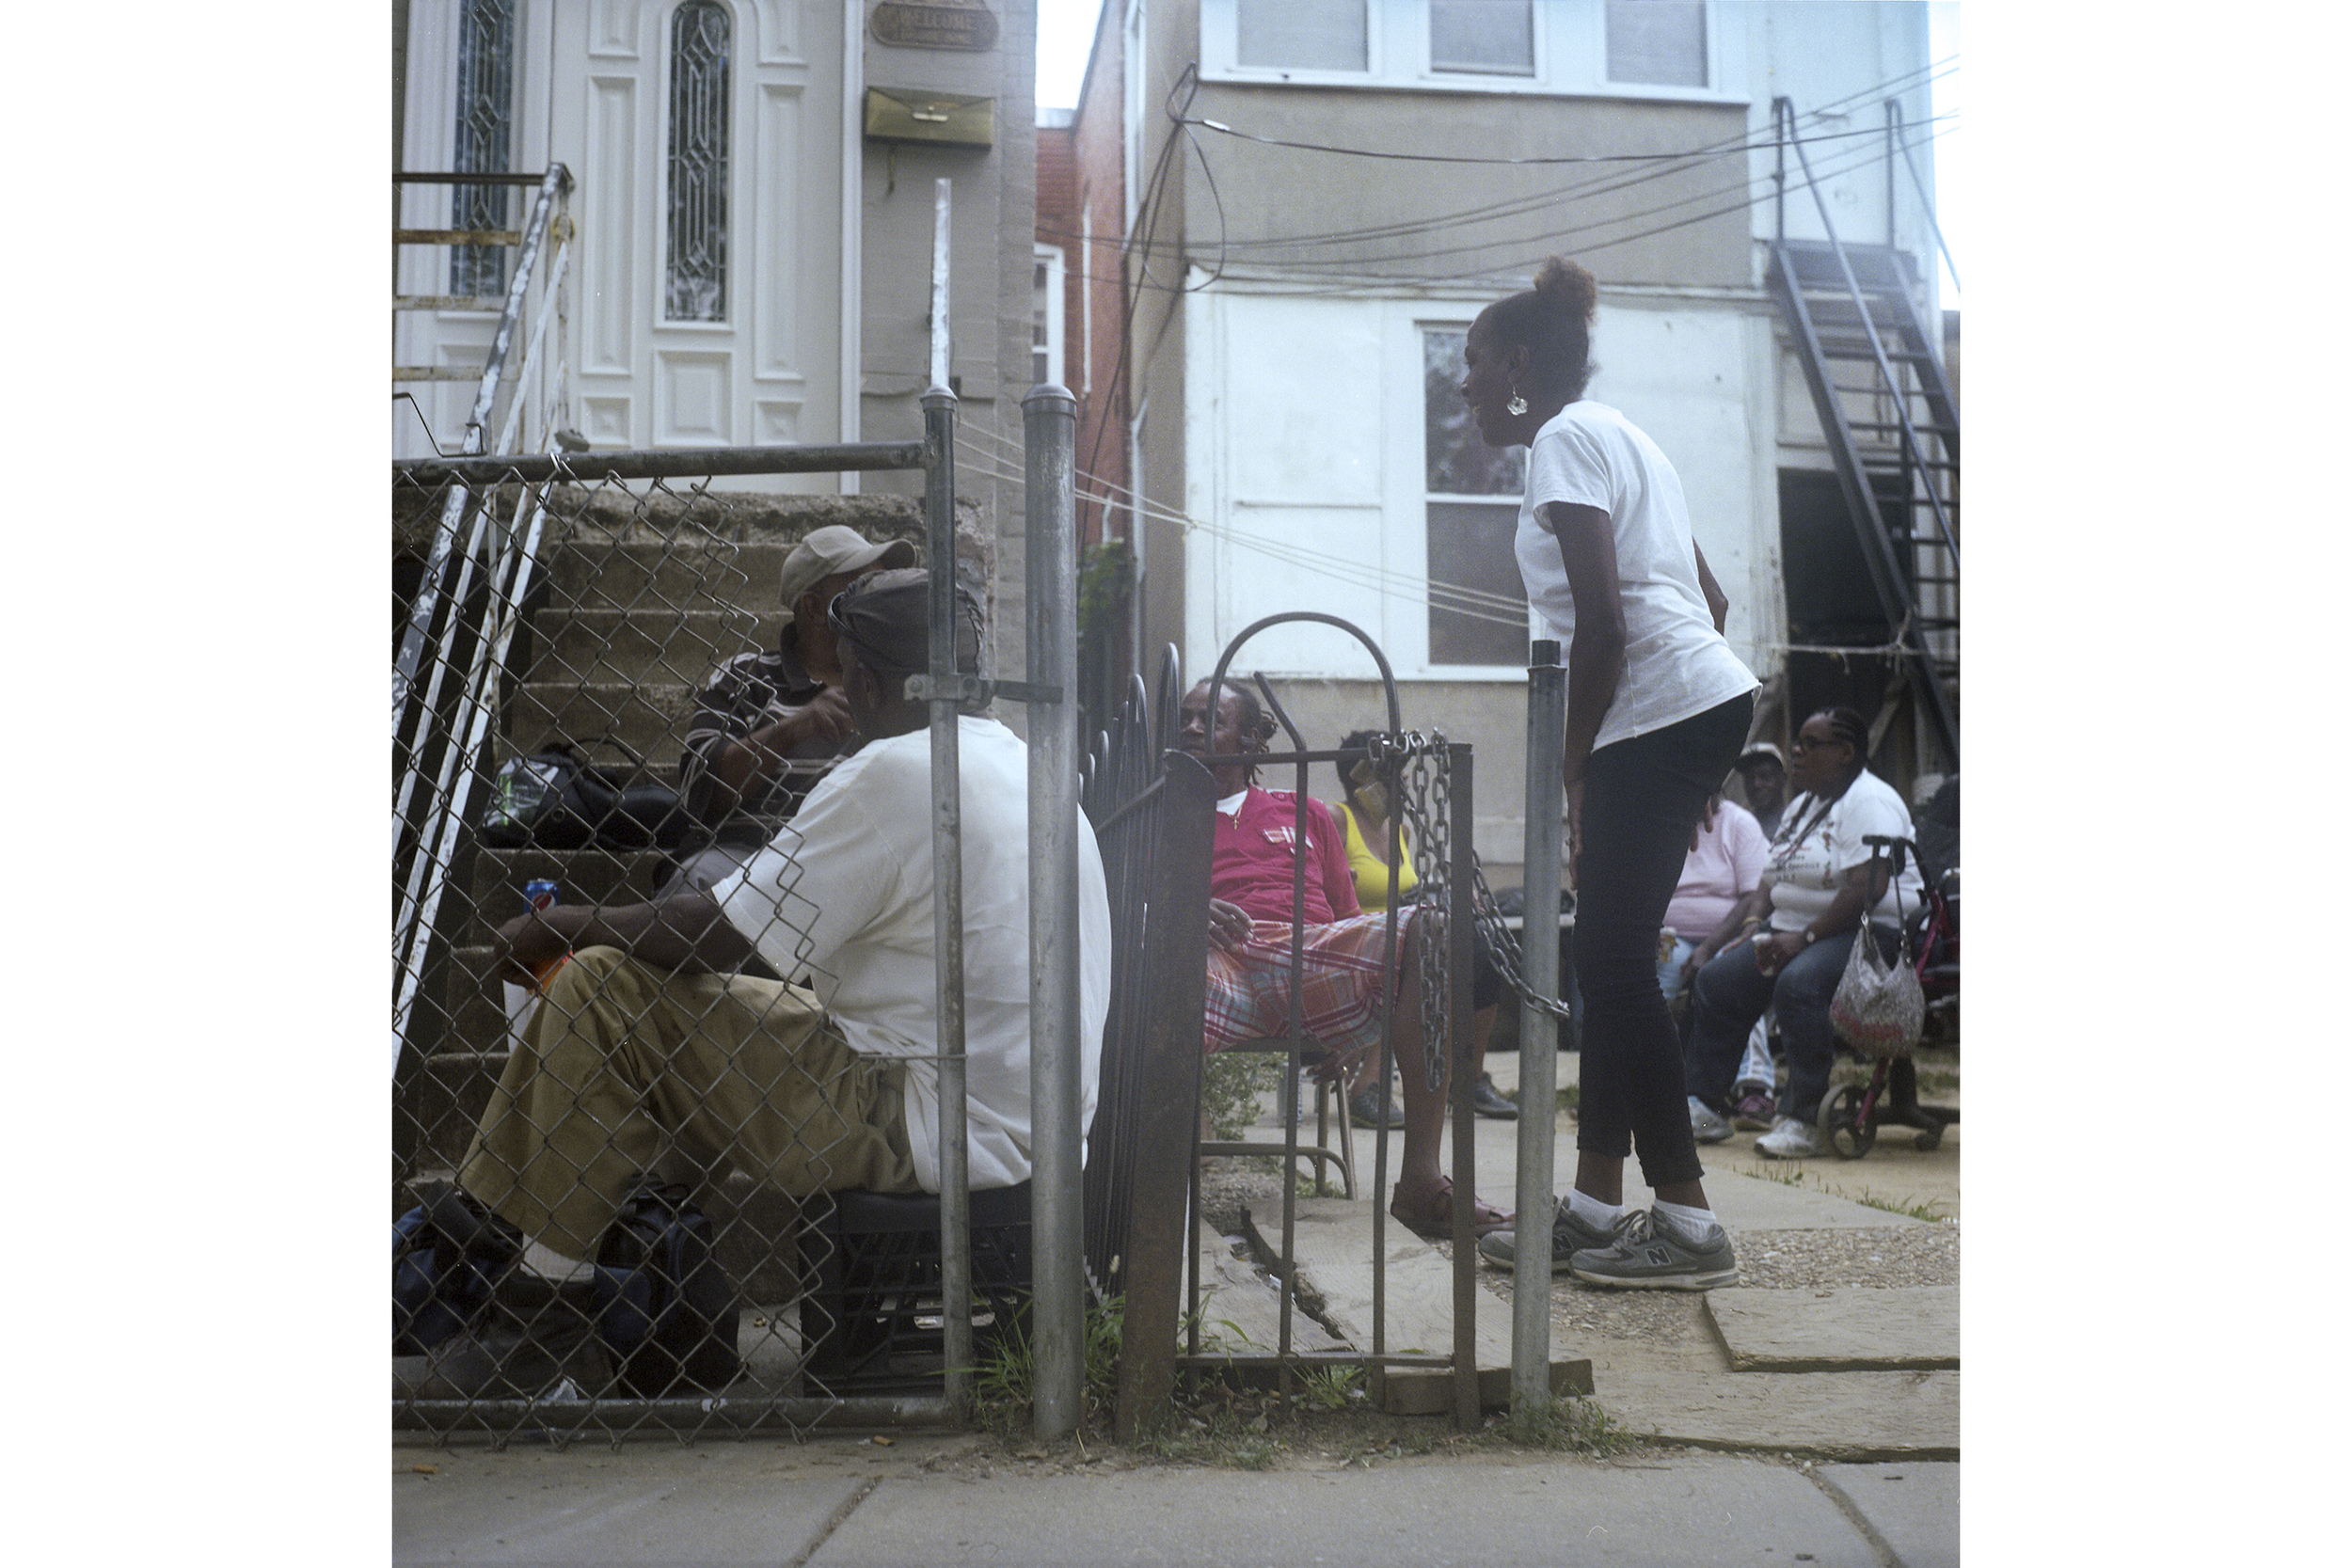 """Veronica (center, white shirt) raised six children in the Northeast area of Washington D.C. """"I have an """"S"""" on my chest,"""" she says. But as developers move in, she isn't sure how long she will be able to afford to stay in this neighborhood where she has lived all her life."""